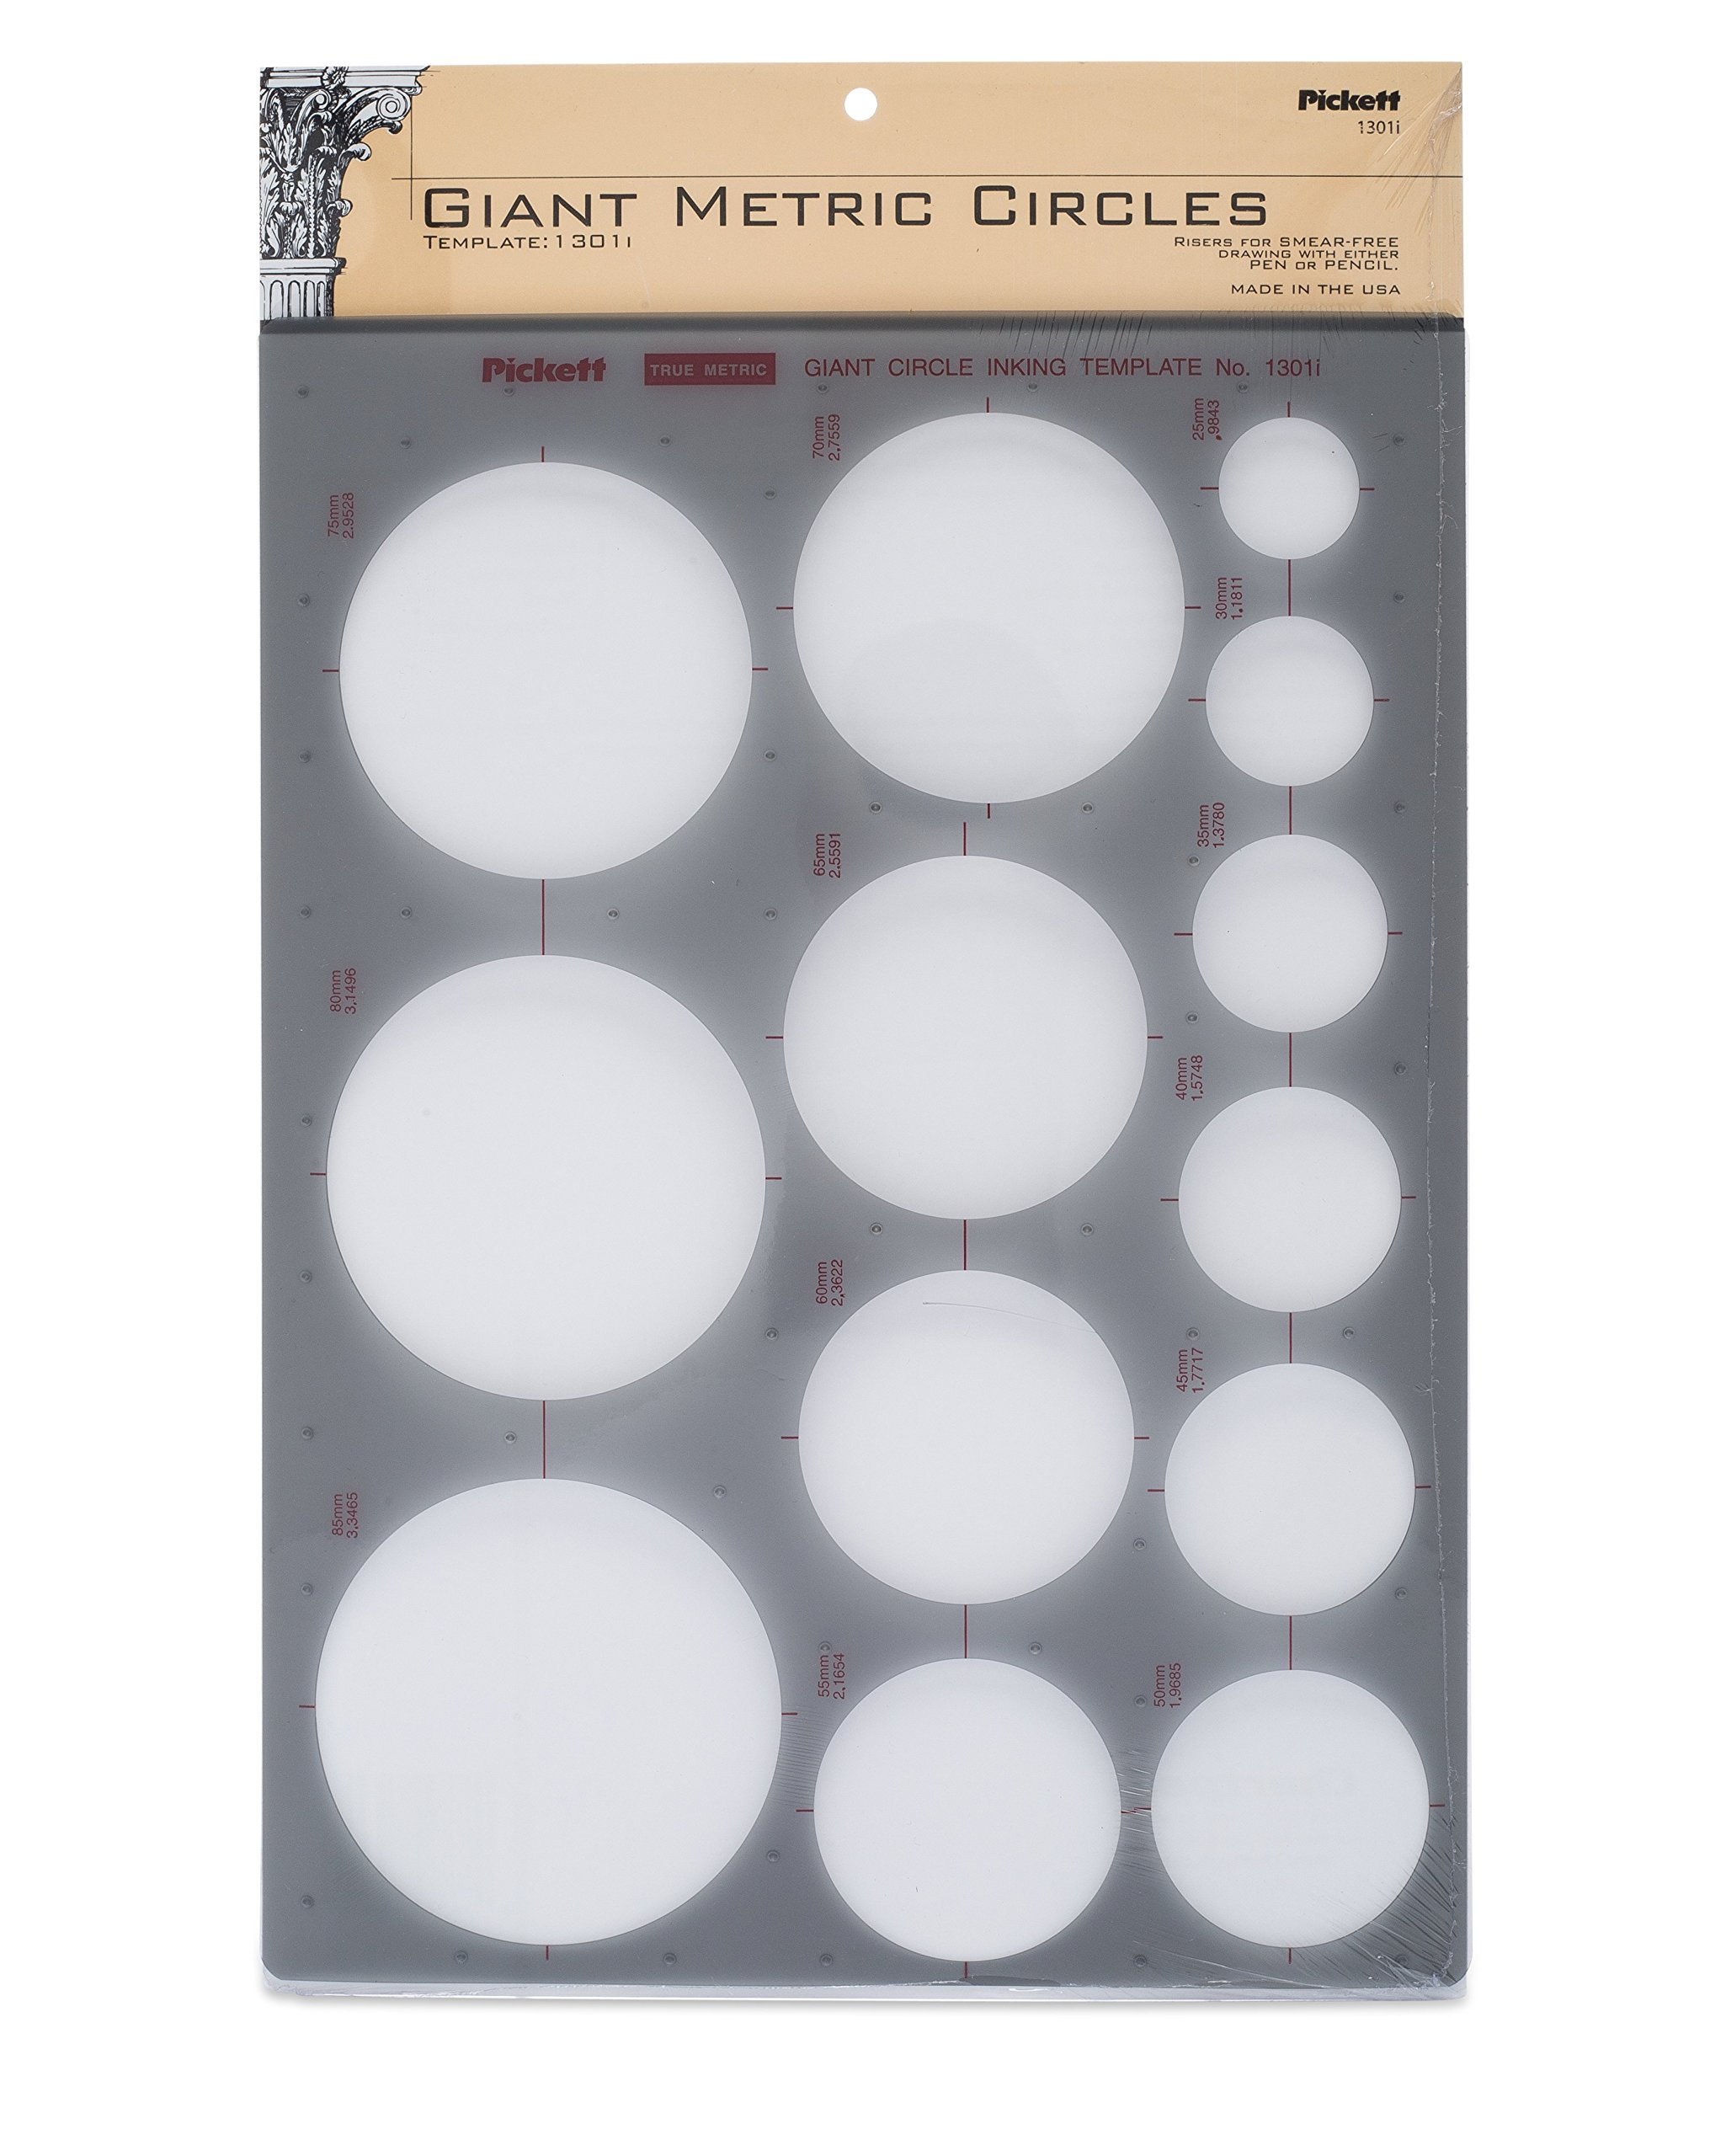 Pickett Giant Metric Circles Template, Circle Range 25mm to 85mm in Diameter (1301I) by Pickett